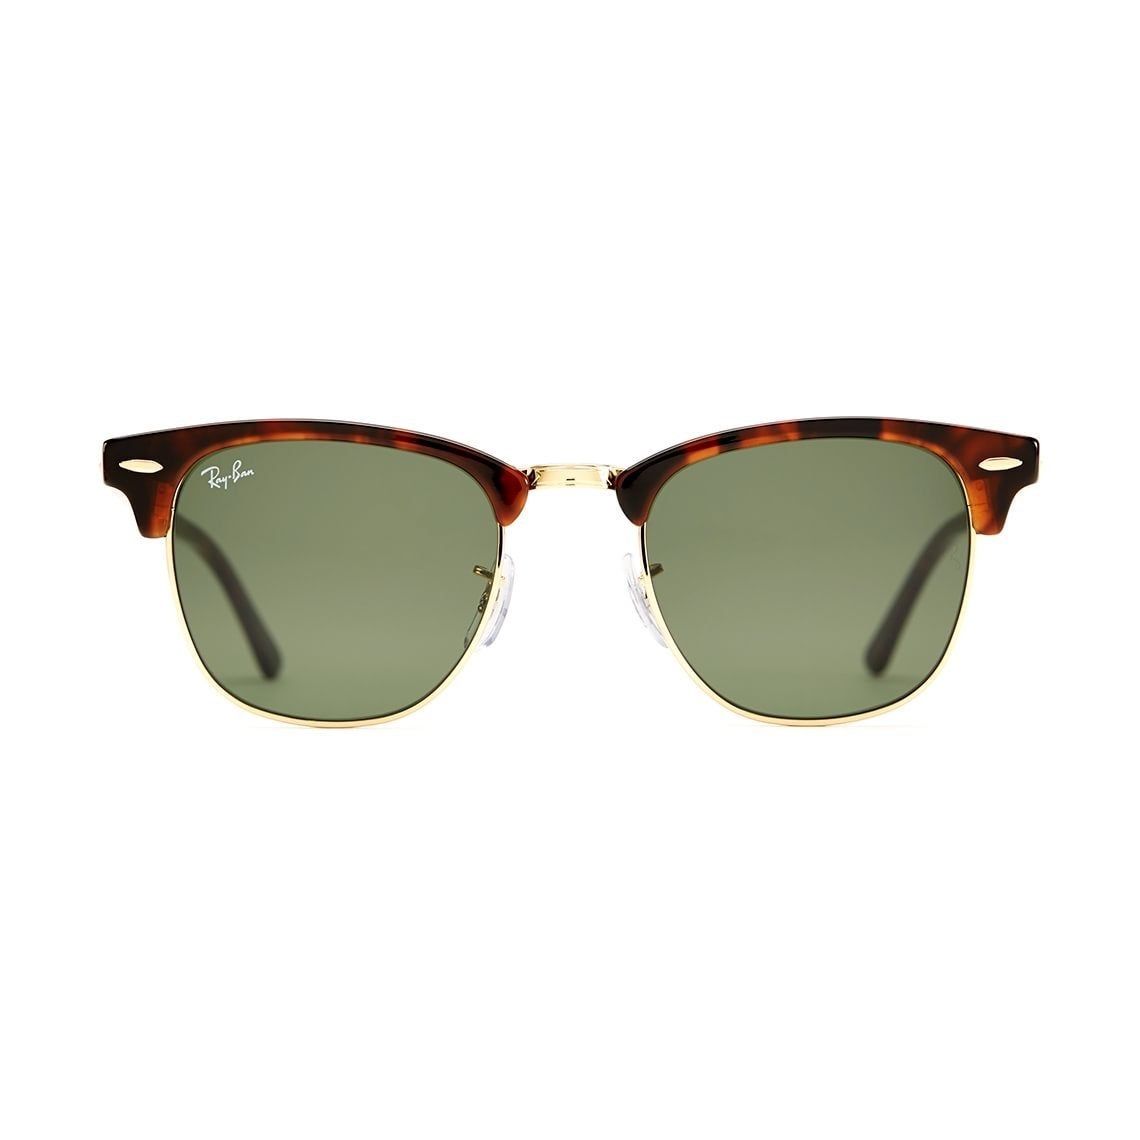 1fbd294a9a17 Shop Ray-Ban Clubmaster RB 3016 Unisex Tortoise Frame Green Classic Lens  Sunglasses - Free Shipping Today - Overstock - 6852790